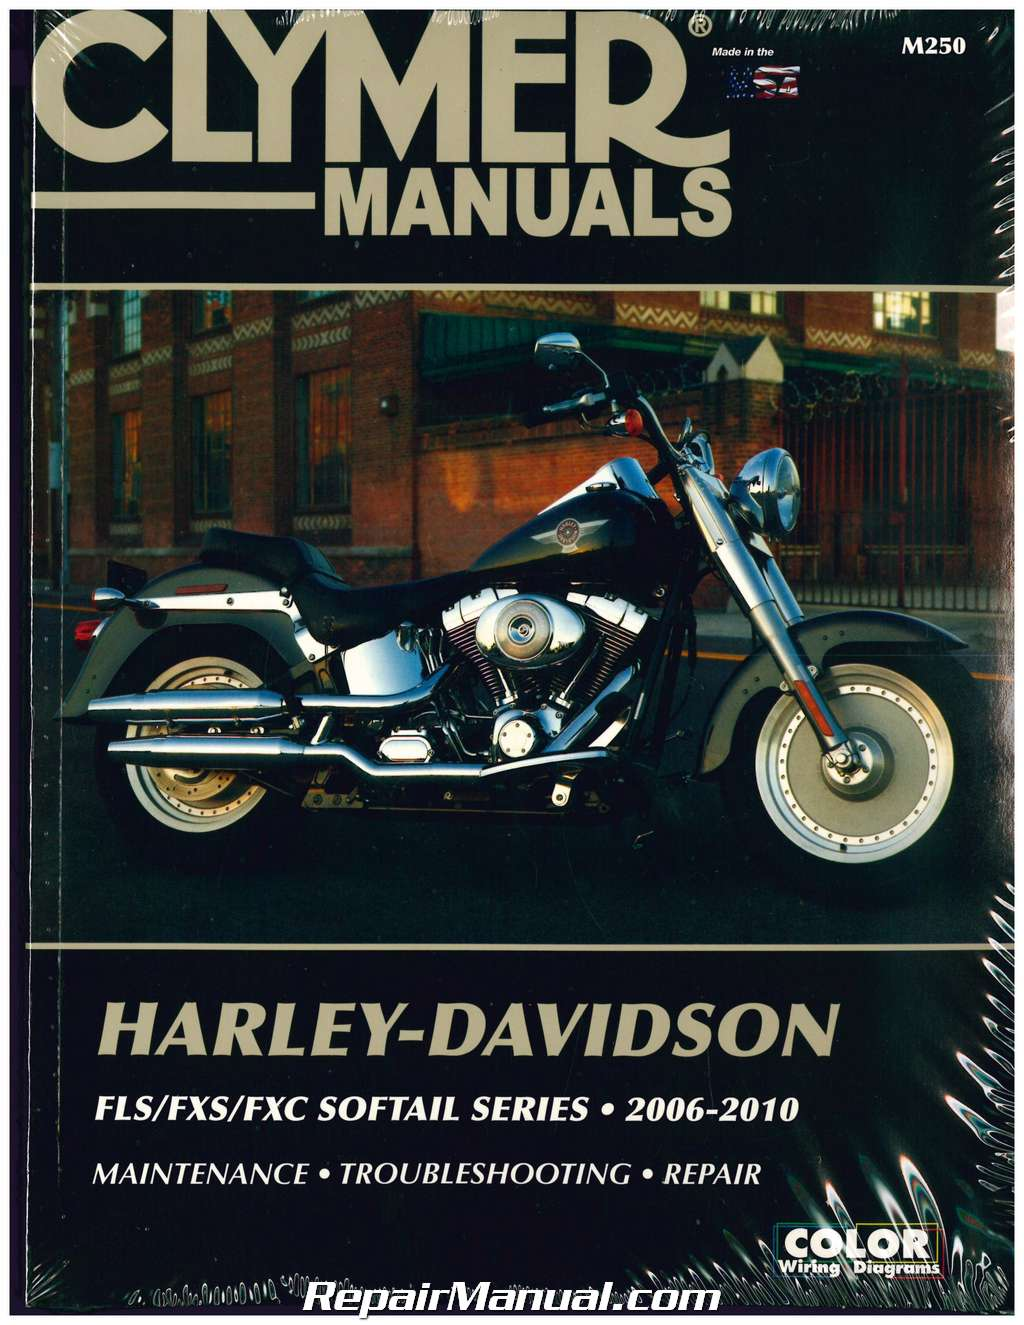 Actual parts may vary. Manufacturer: CLYMER 1991-1998 Harley Davidson FXD Evolution CLYMER MANUAL HD FXD EVOLUTION91-98 Stock Photo Manufacturer Part Number: M424-2-AD